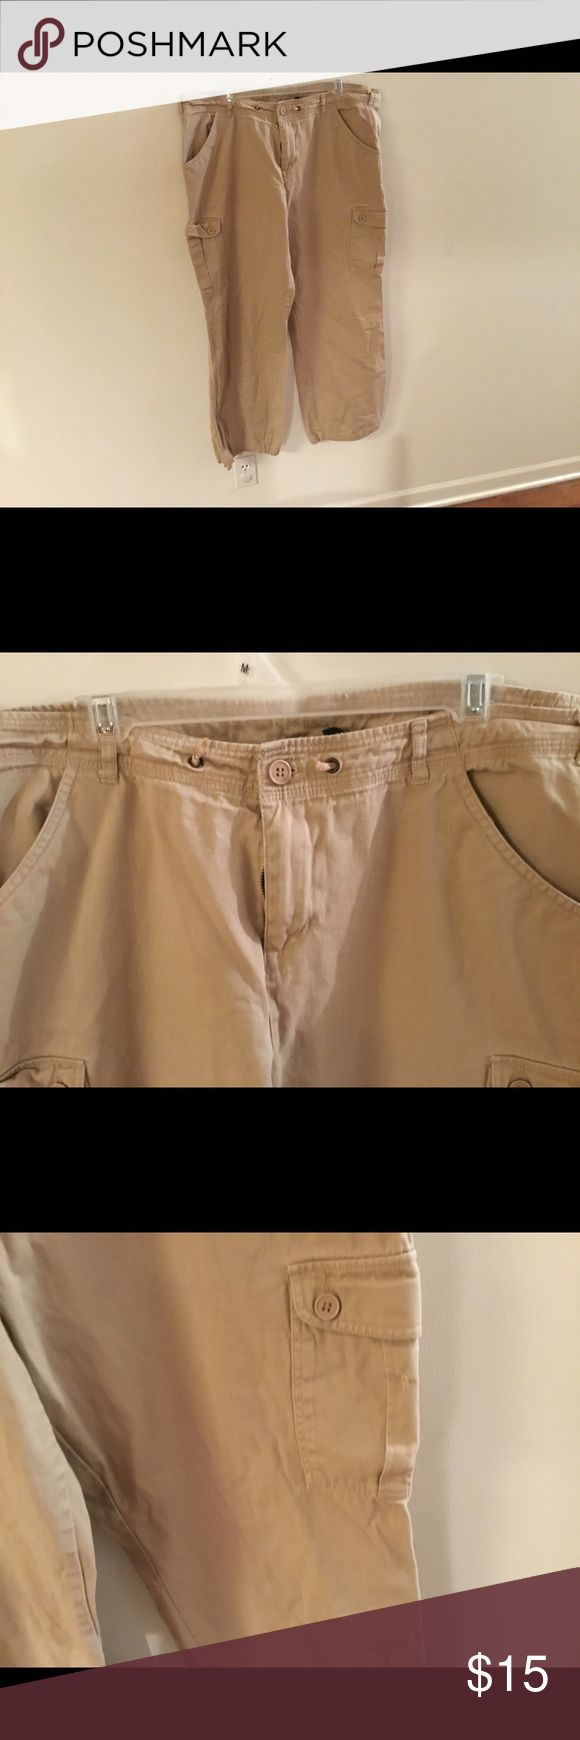 Cargo pants Metro style khaki/tan cargo pants size 18W. Legs can by cinched in with the draw string. Inseam approximately 29 inches. Pants Straight Leg